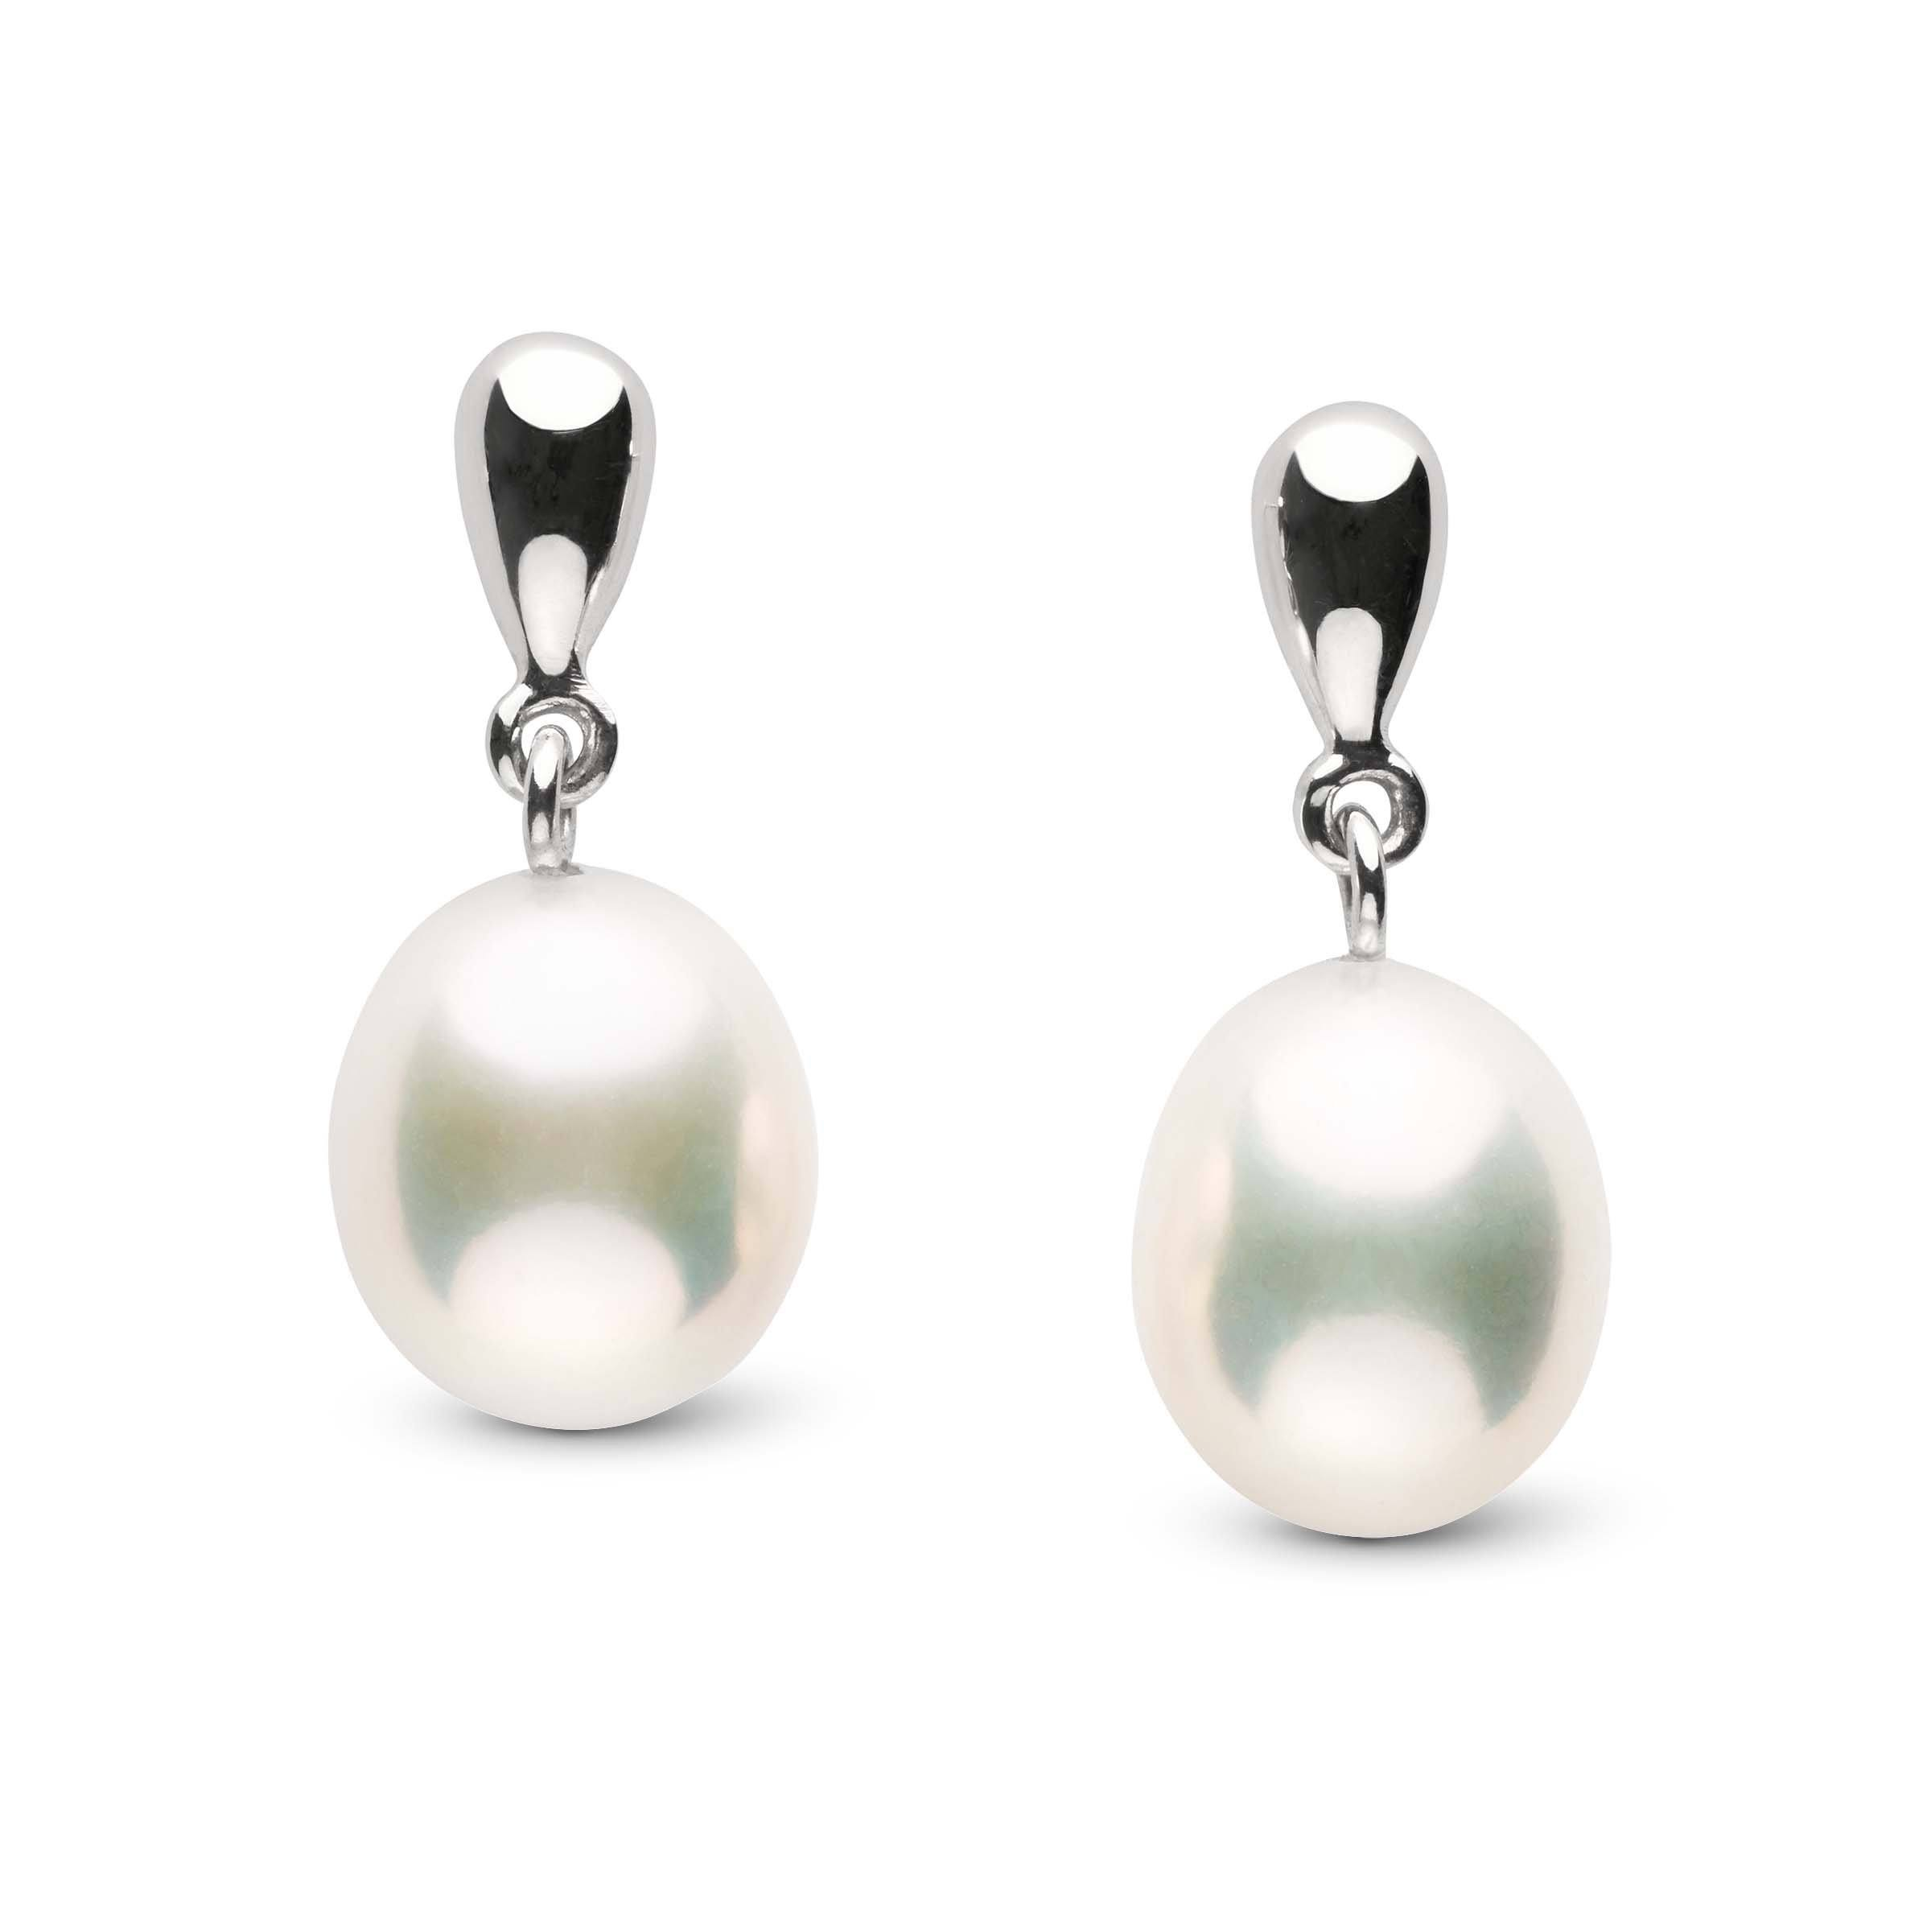 Dew Collection Metallic White Freshwater Drop 9.0-10.0 mm Pearl Earrings